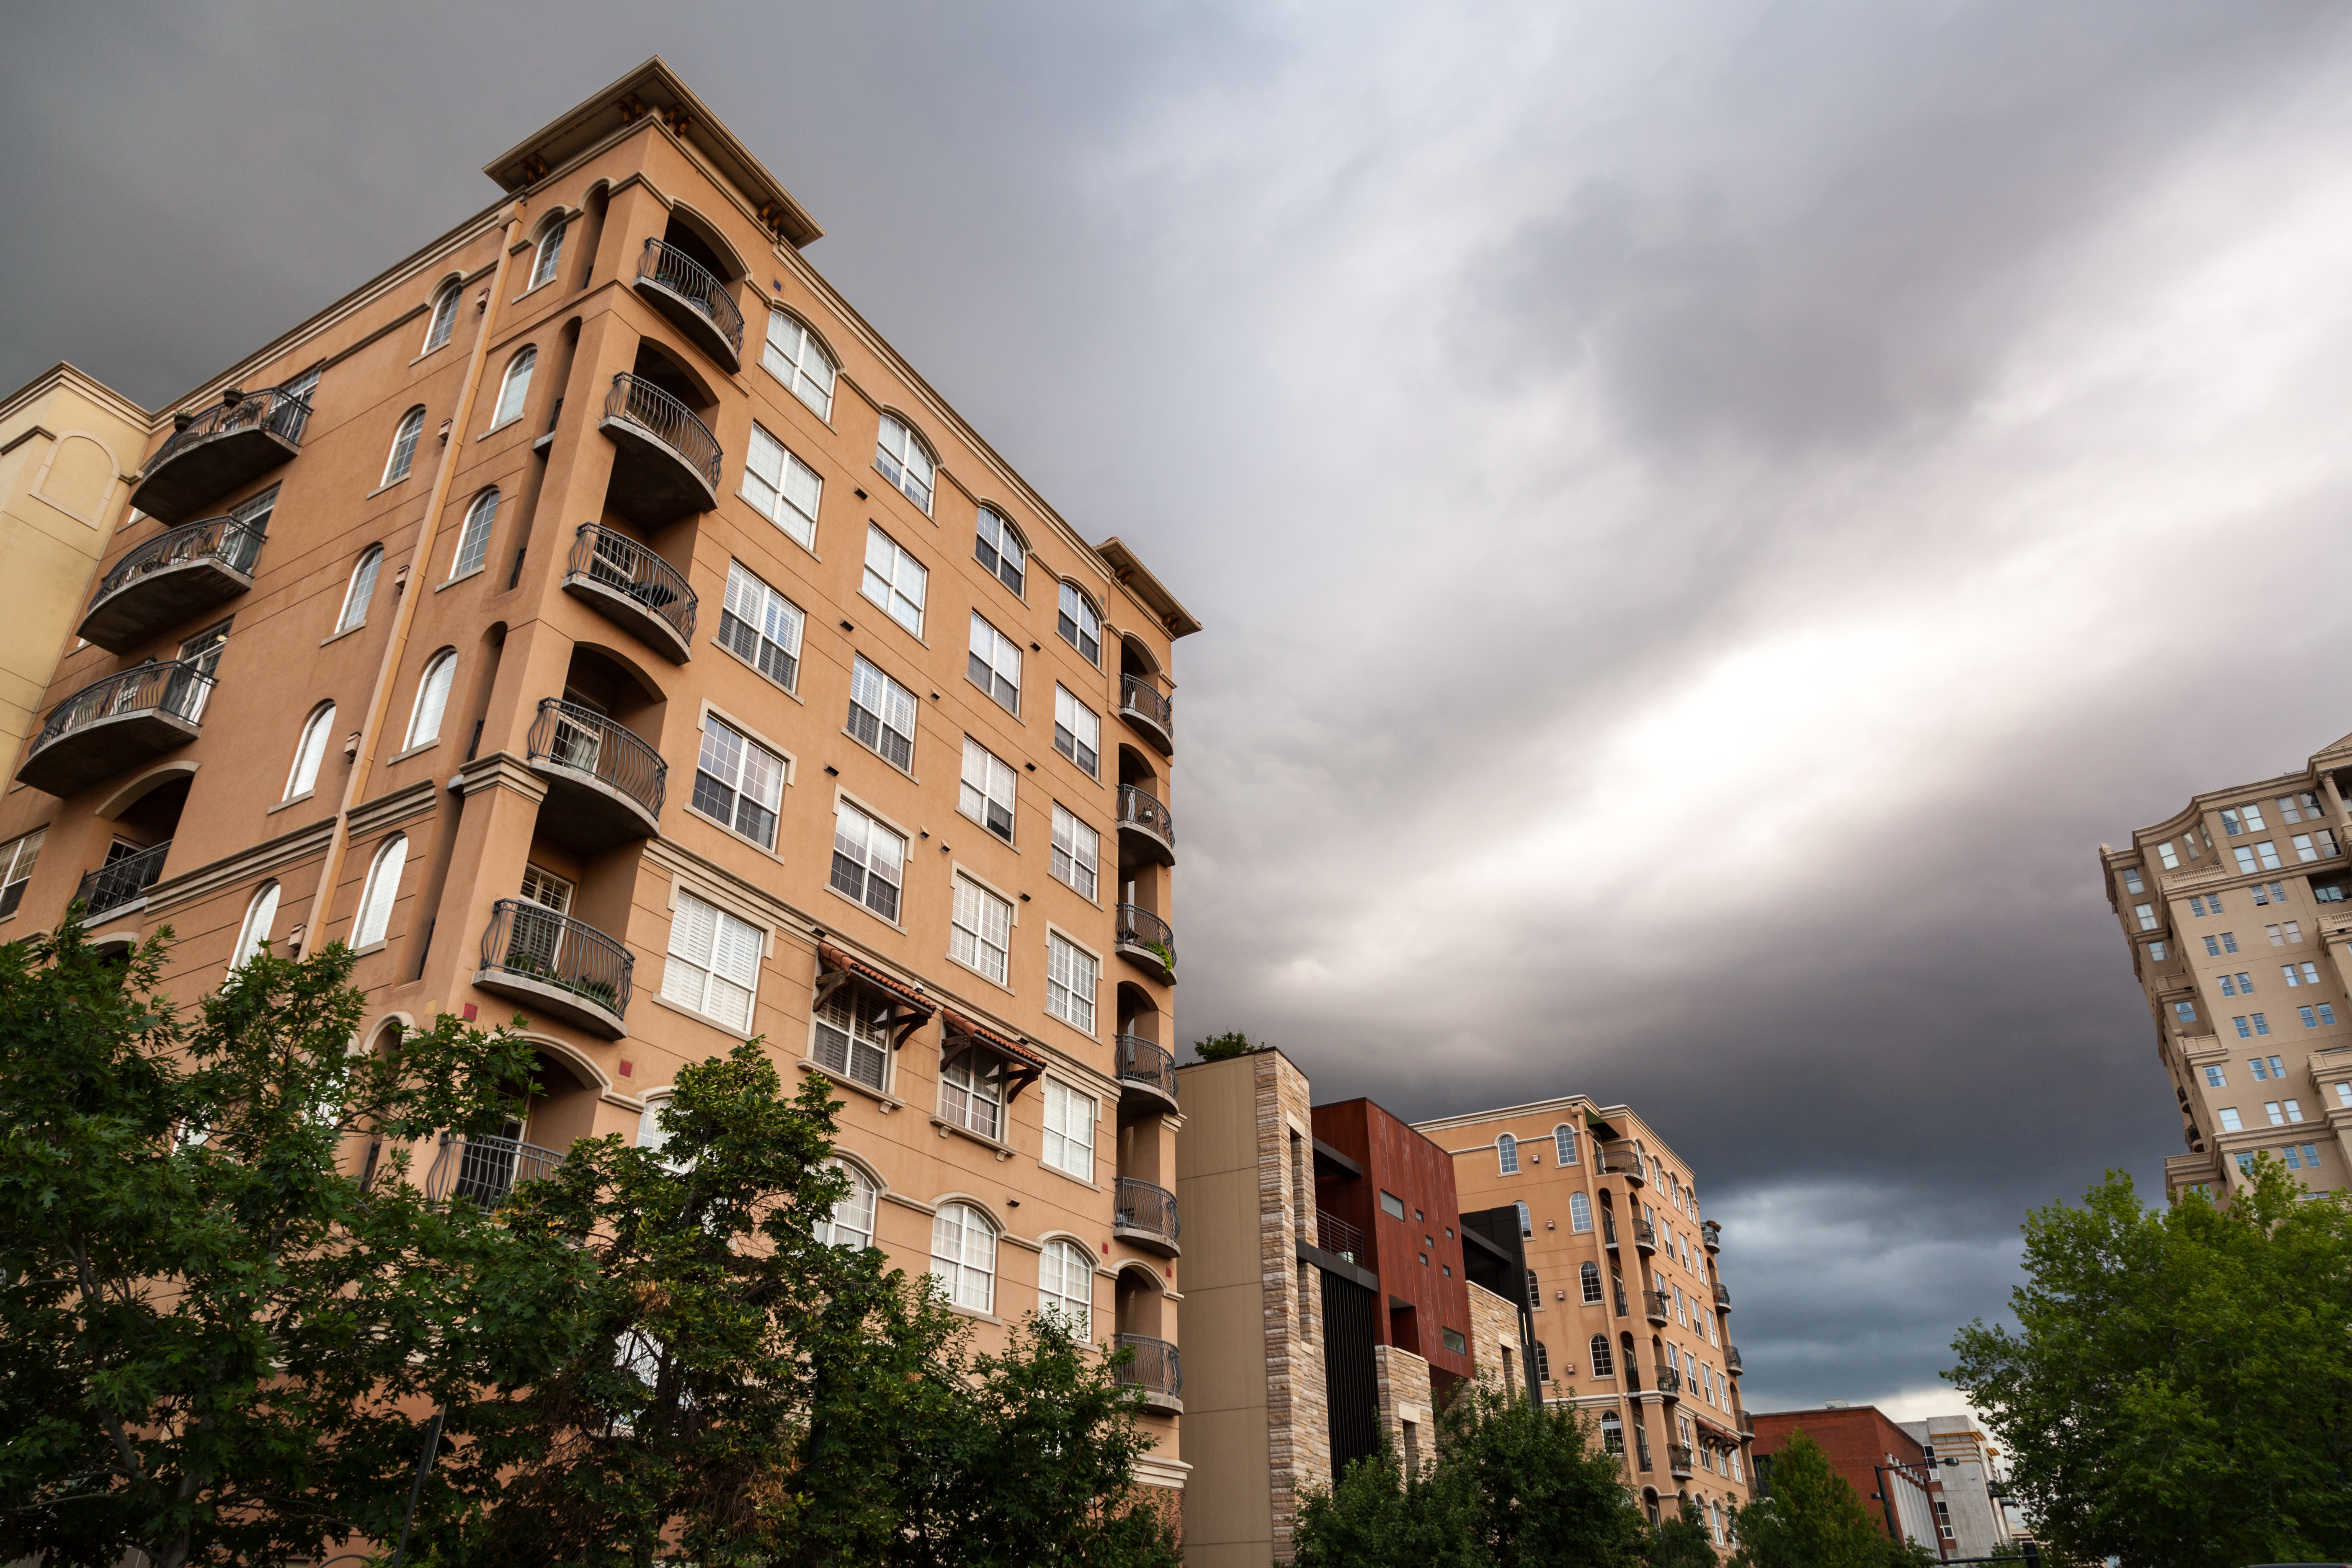 Opinion: Rent Control Will Make Housing Shortages Worse